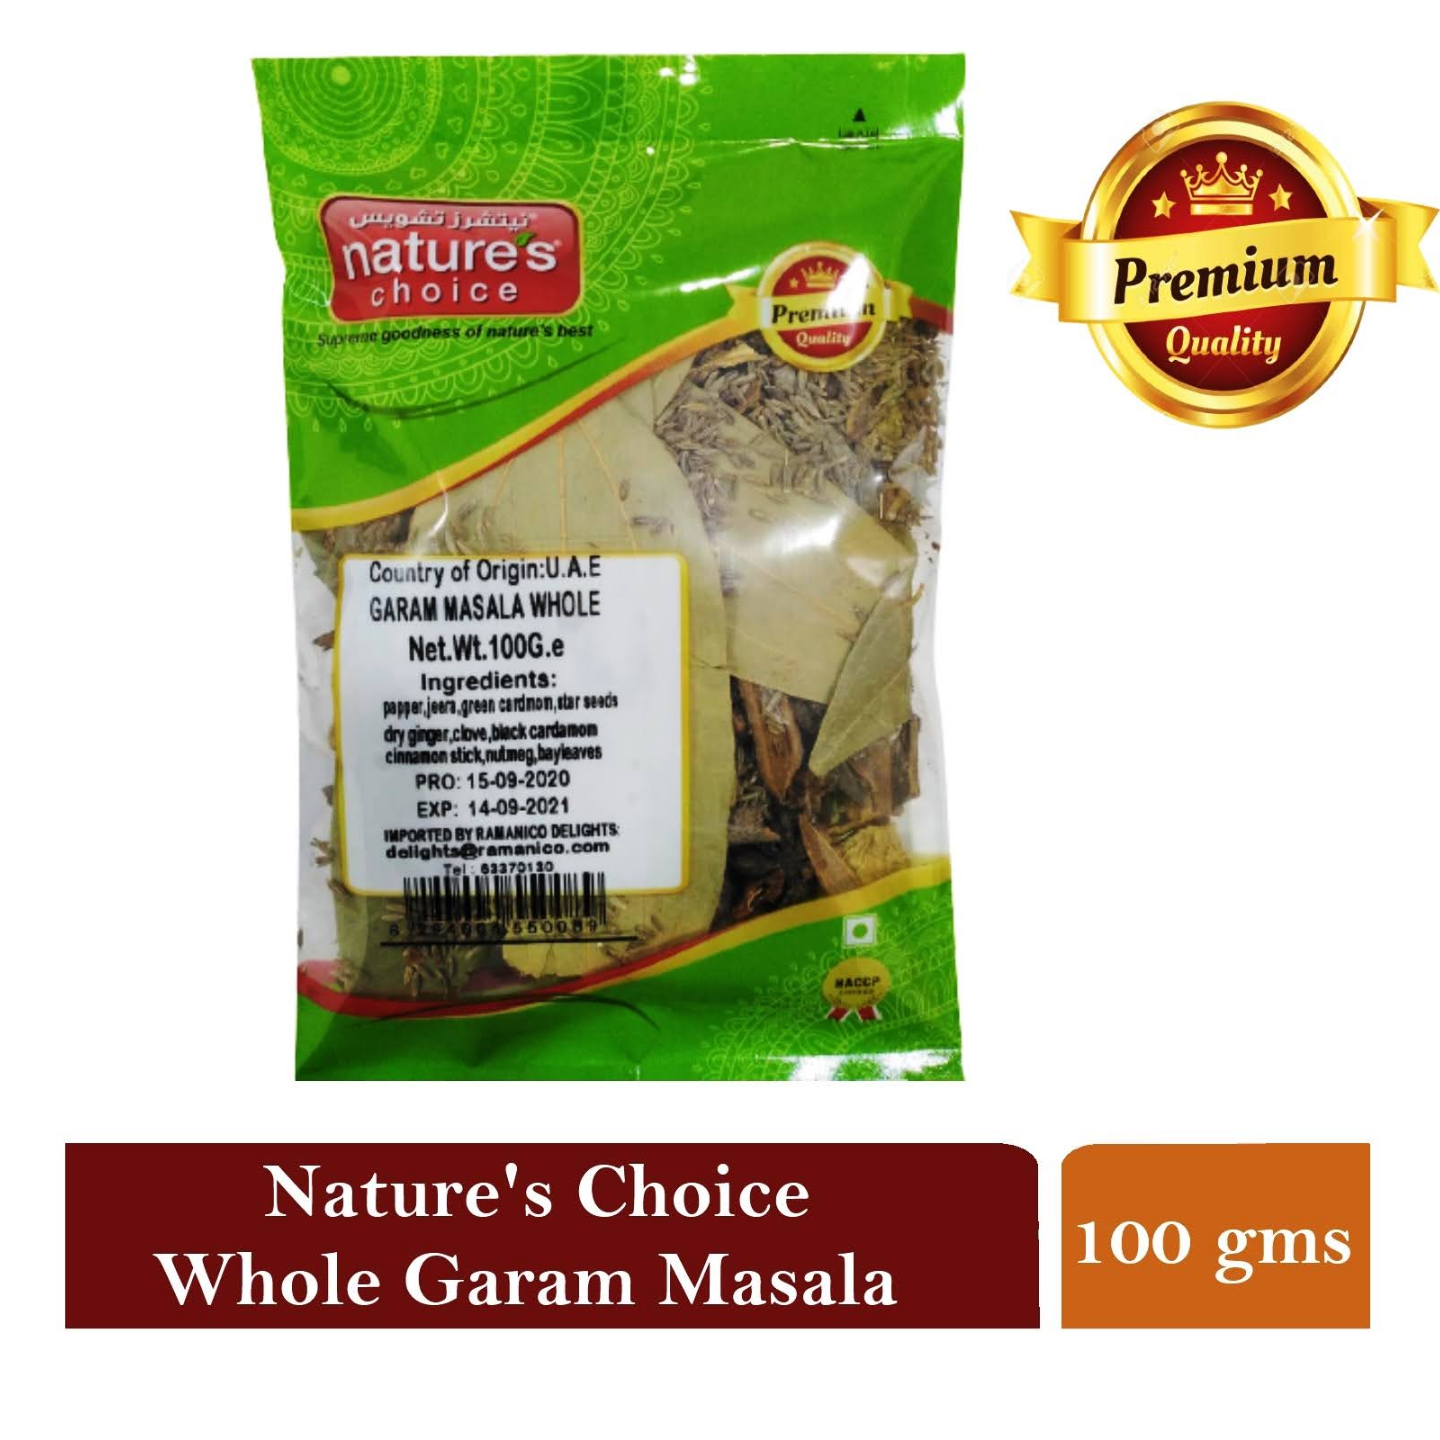 NATURE'S CHOICE PREMIUM QUALITY WHOLE GARAM MASALA 100G